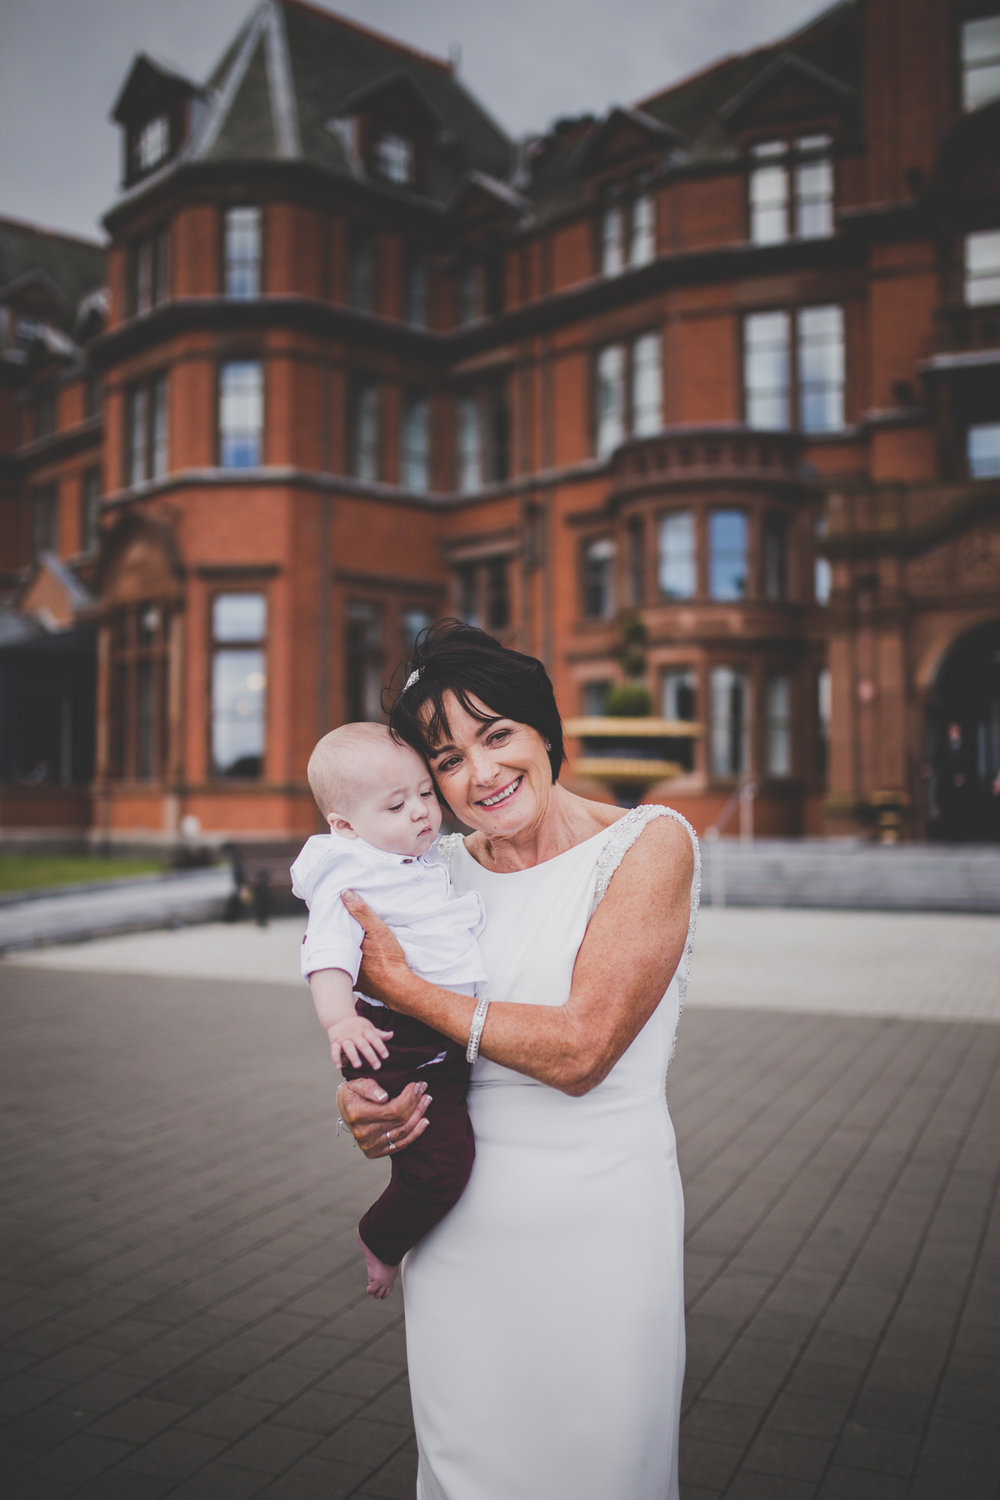 Slieve Donard Resort & Spa Wedding Photography County Down Andrew McKenna